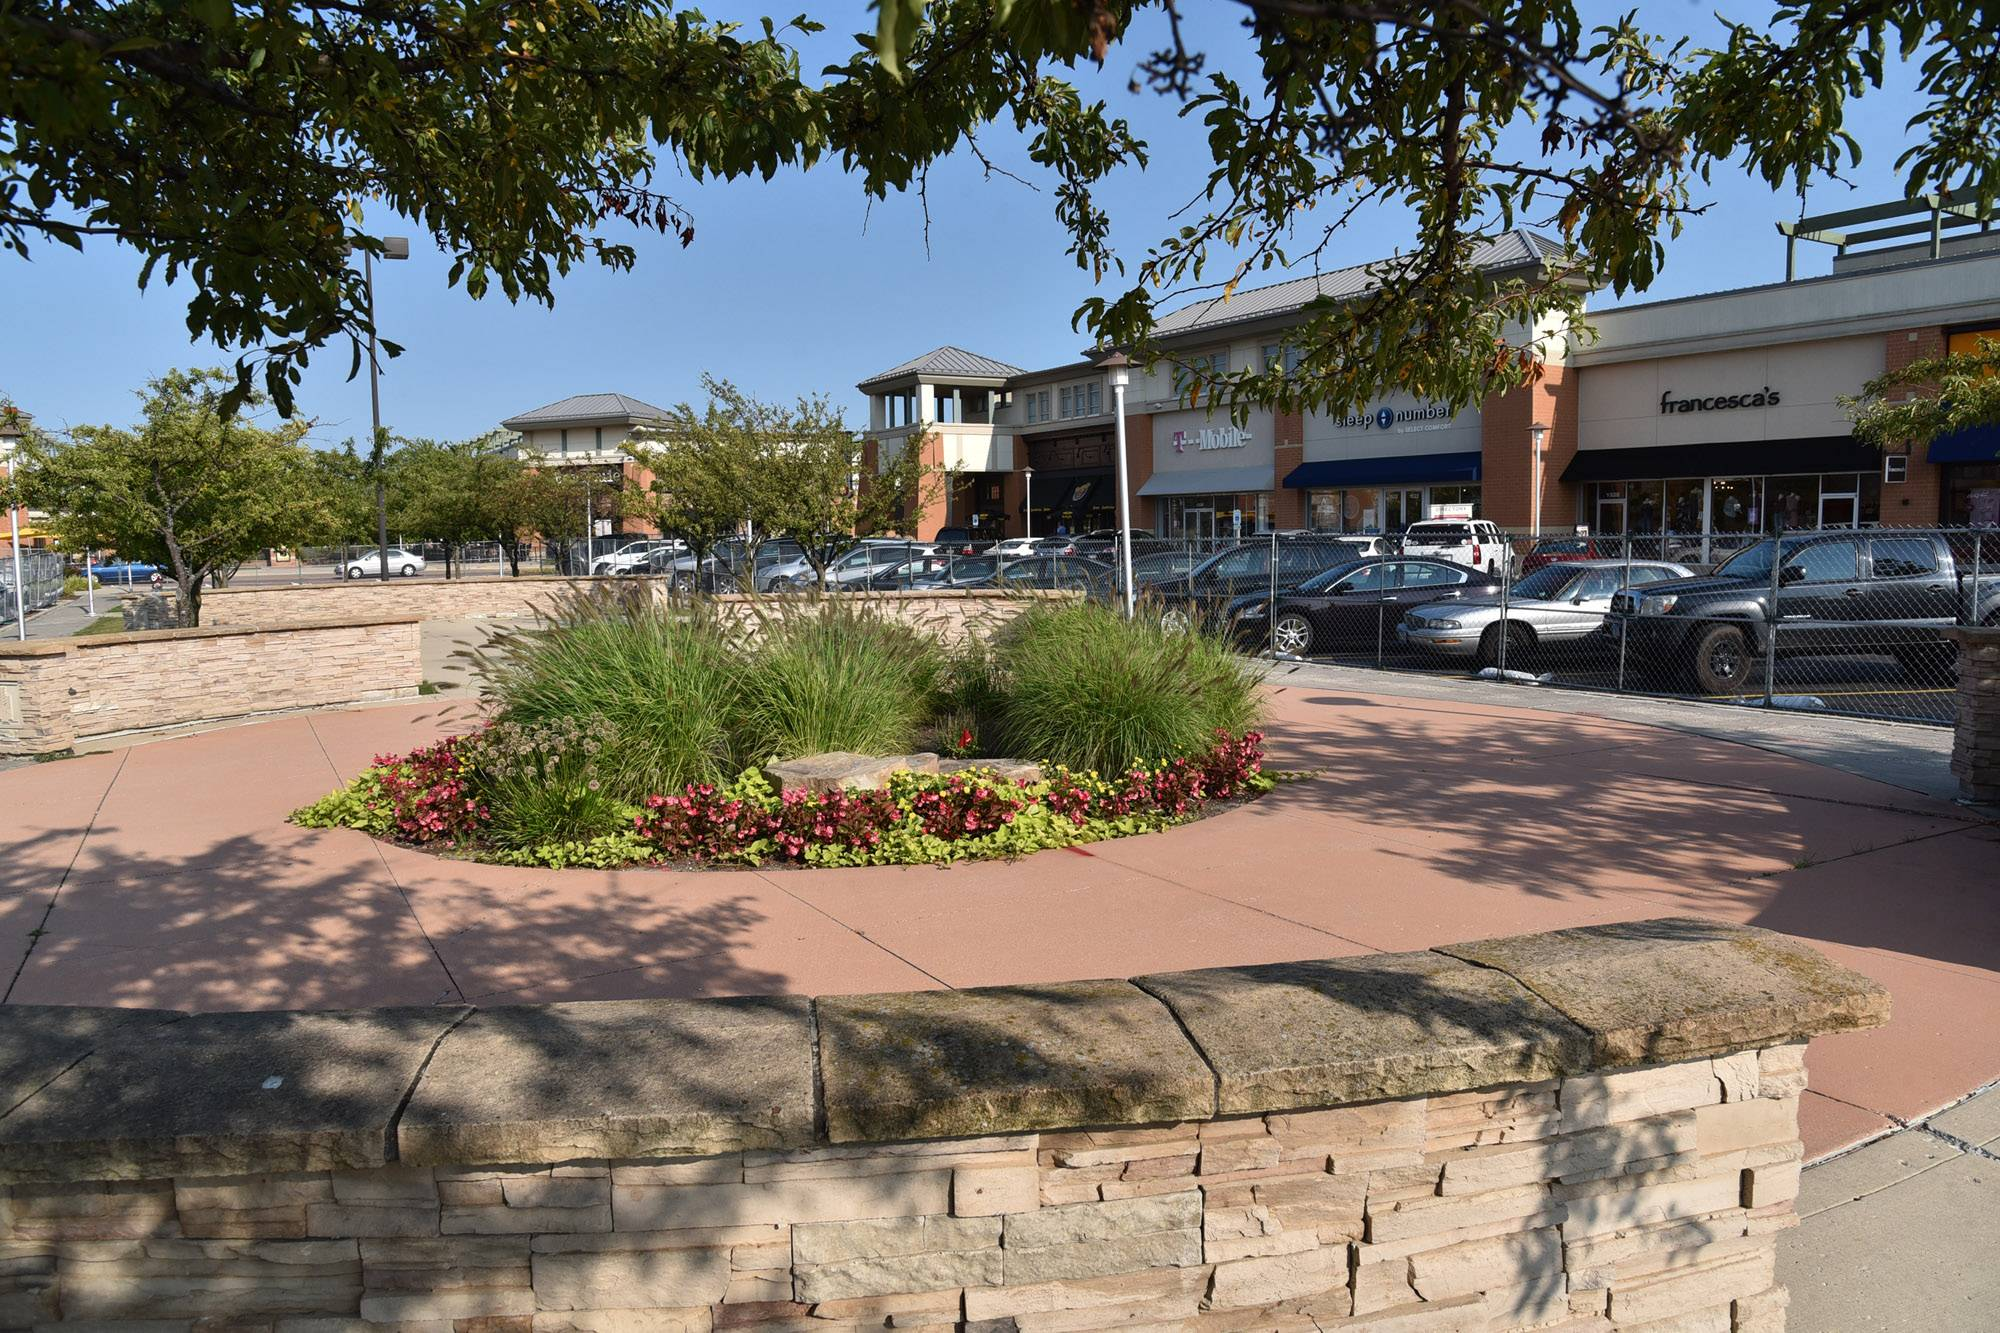 The commons area in the heart of the Geneva Commons shopping center is undergoing a transformation that will make it a park-like gathering place.